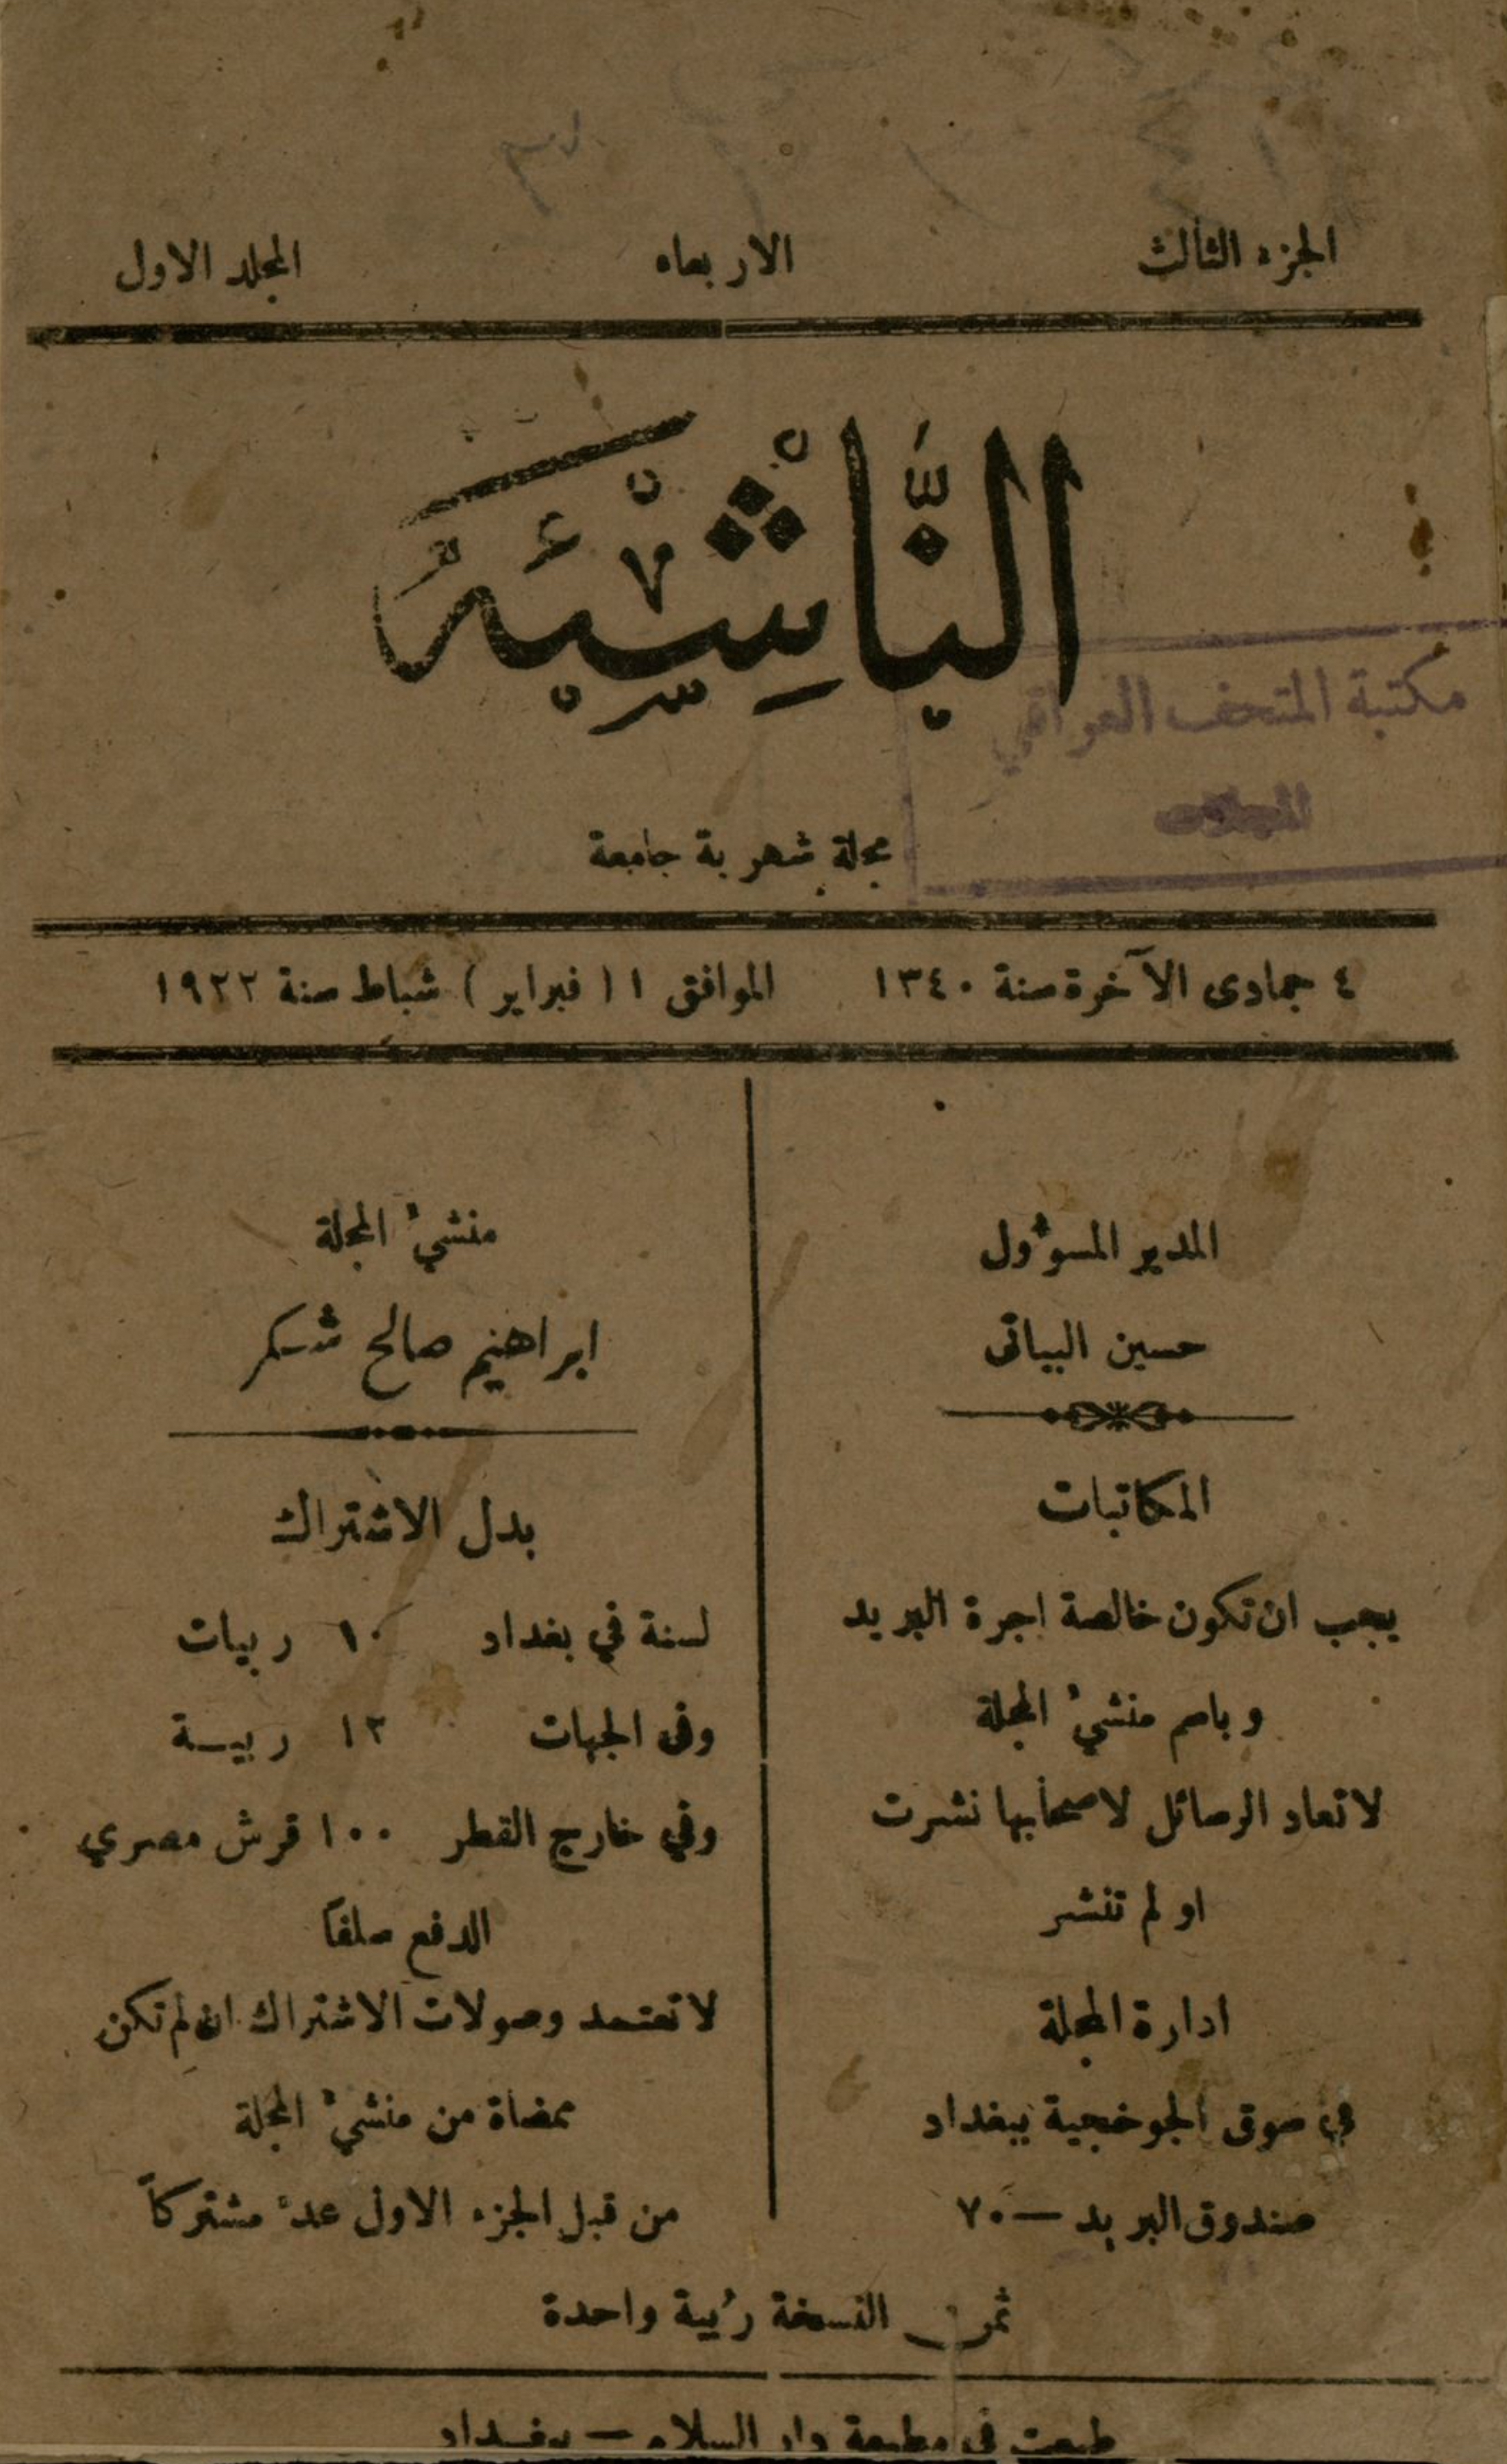 Ru'ya [Short Story], An-Nashi'a (Feb. 1922), pp. 137-138.